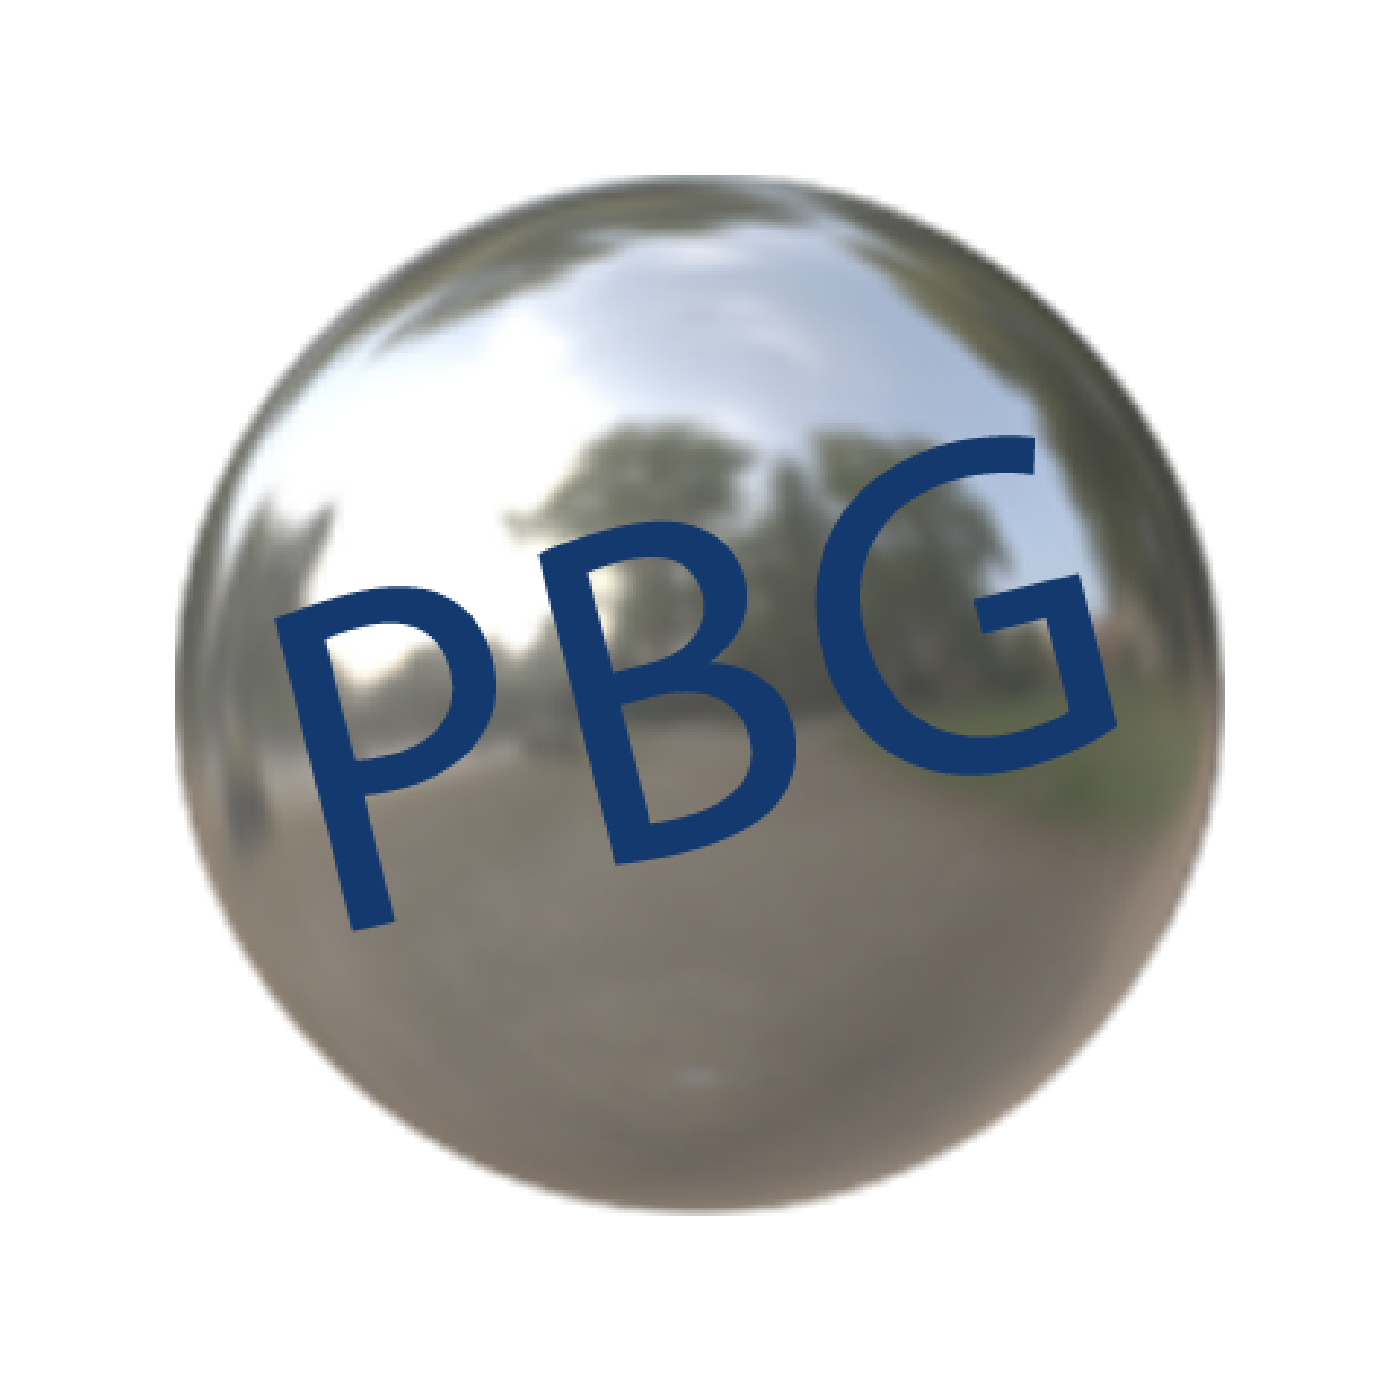 Chrome metal ball png. Precision and gauge specifications